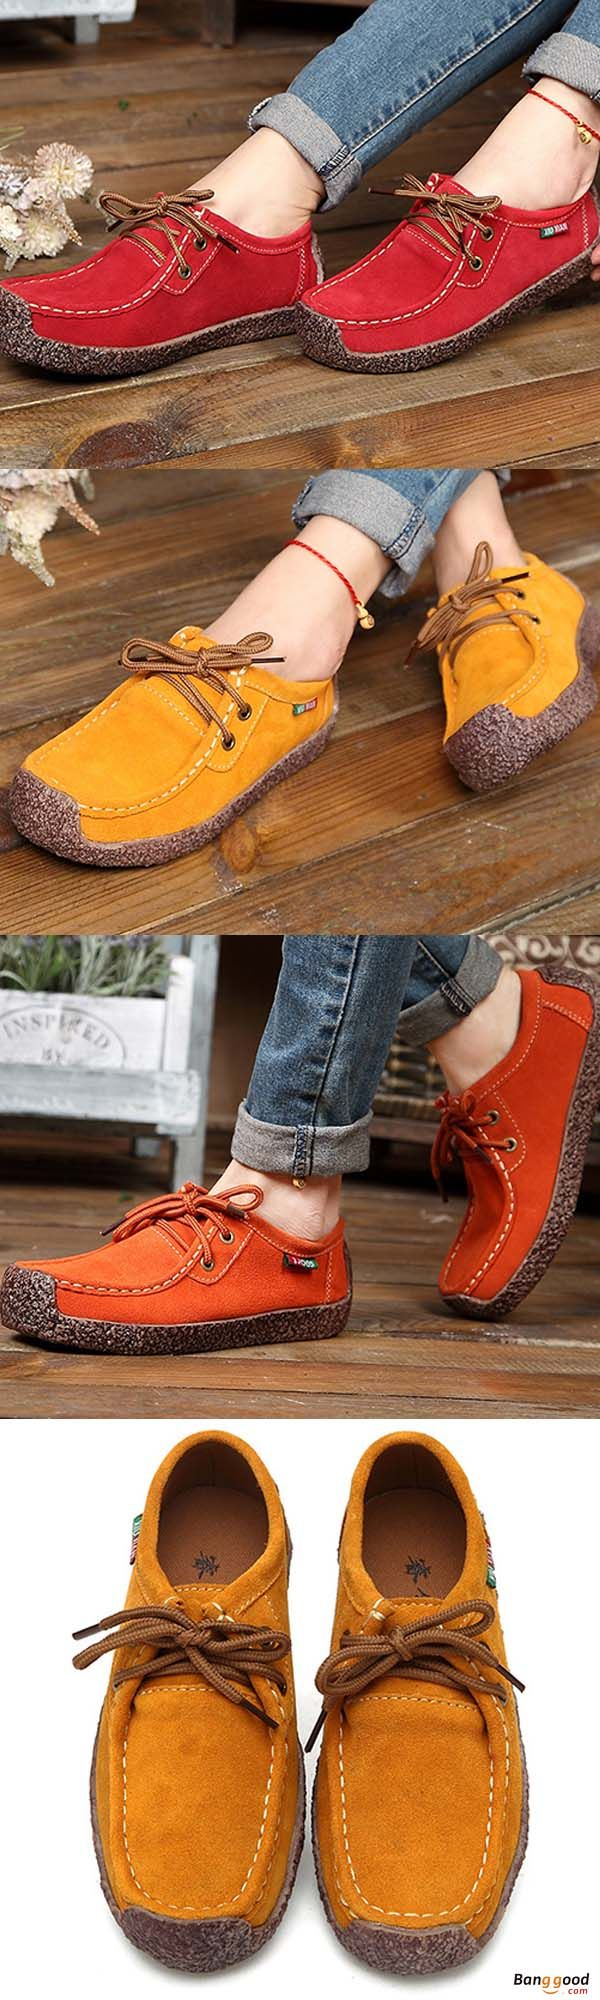 4e4fc19d7 US$35.79+ Free shipping. US Size 5-11 Women Suede Casual Outdoor Lace Up  Comfy Flat Shoes. lace up shoes, sport shoes, flat shoes, women shoes, casual  shoes ...